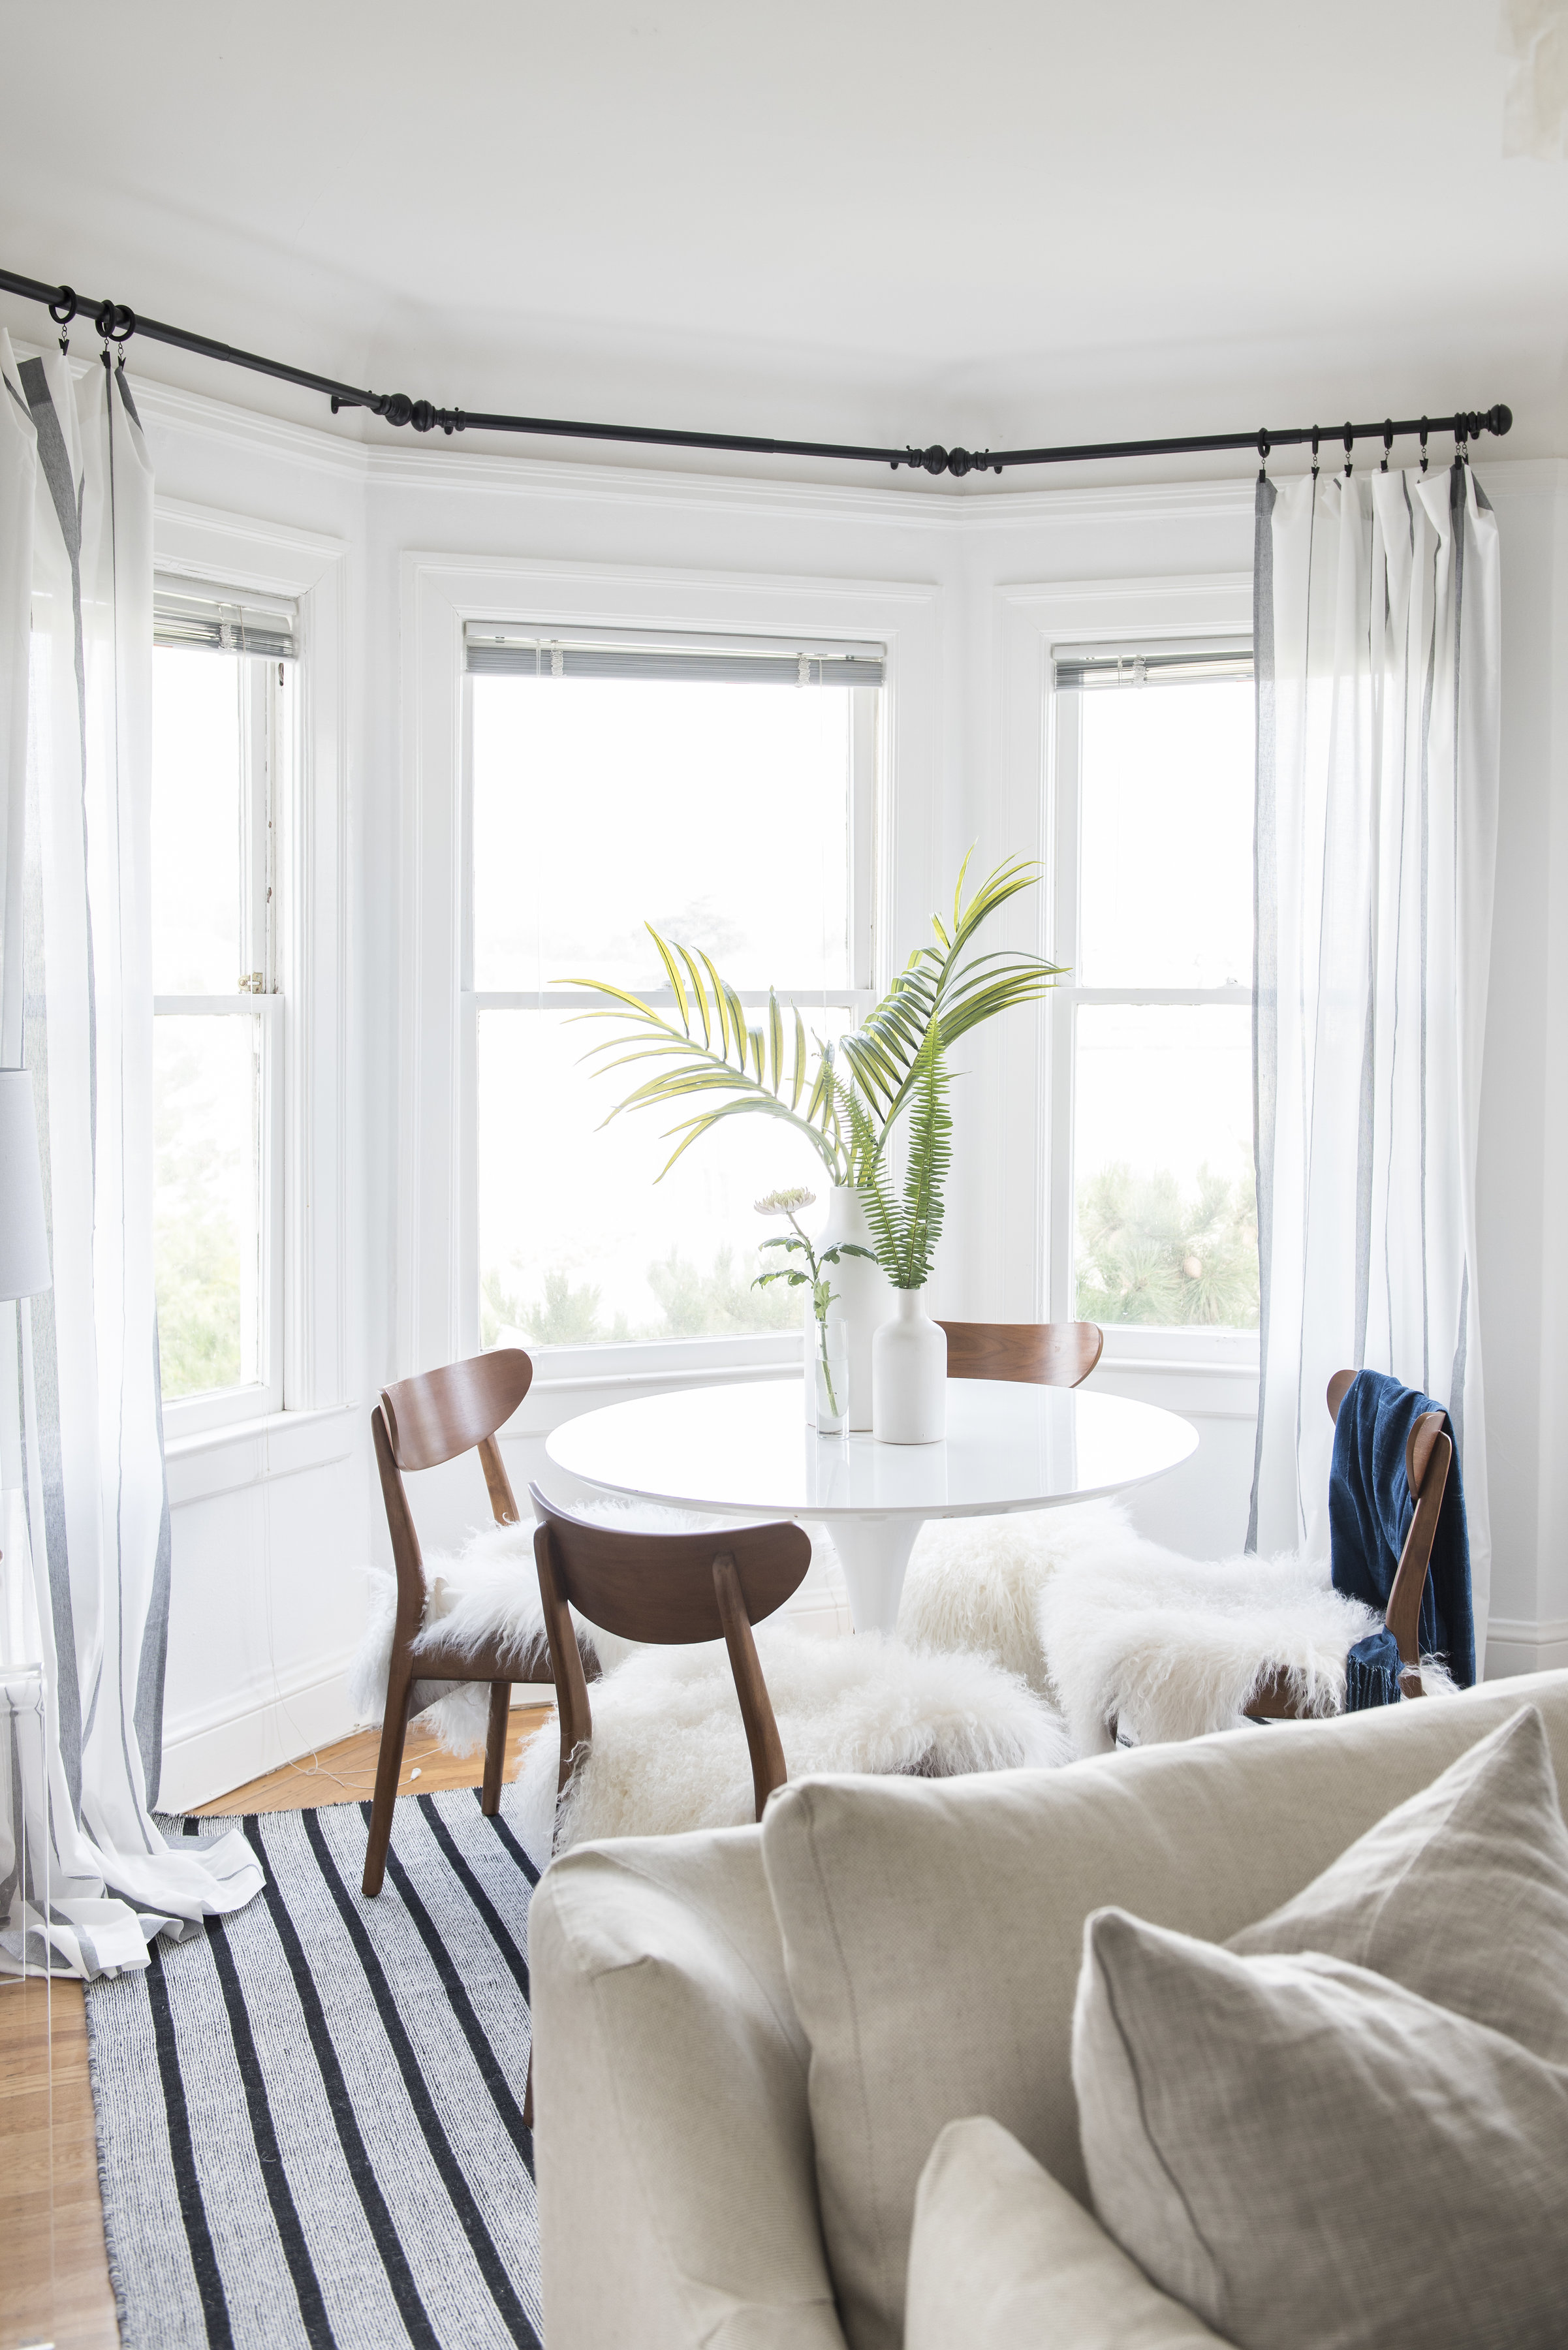 Stylish Curtain & Window Treatment Ideas  Apartment Therapy